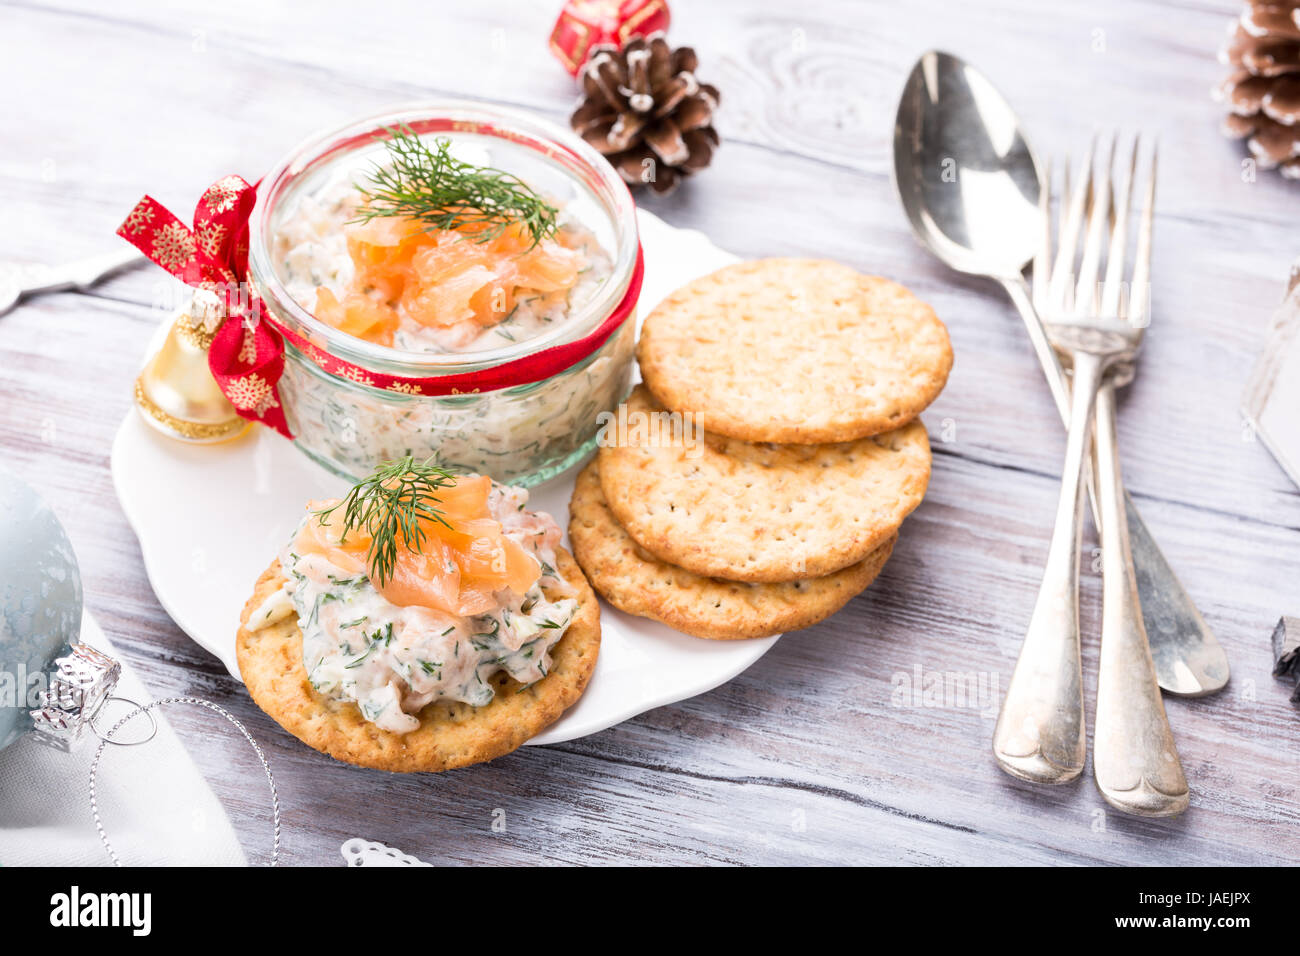 Smoked salmon, soft cheese and dill spread - Stock Image